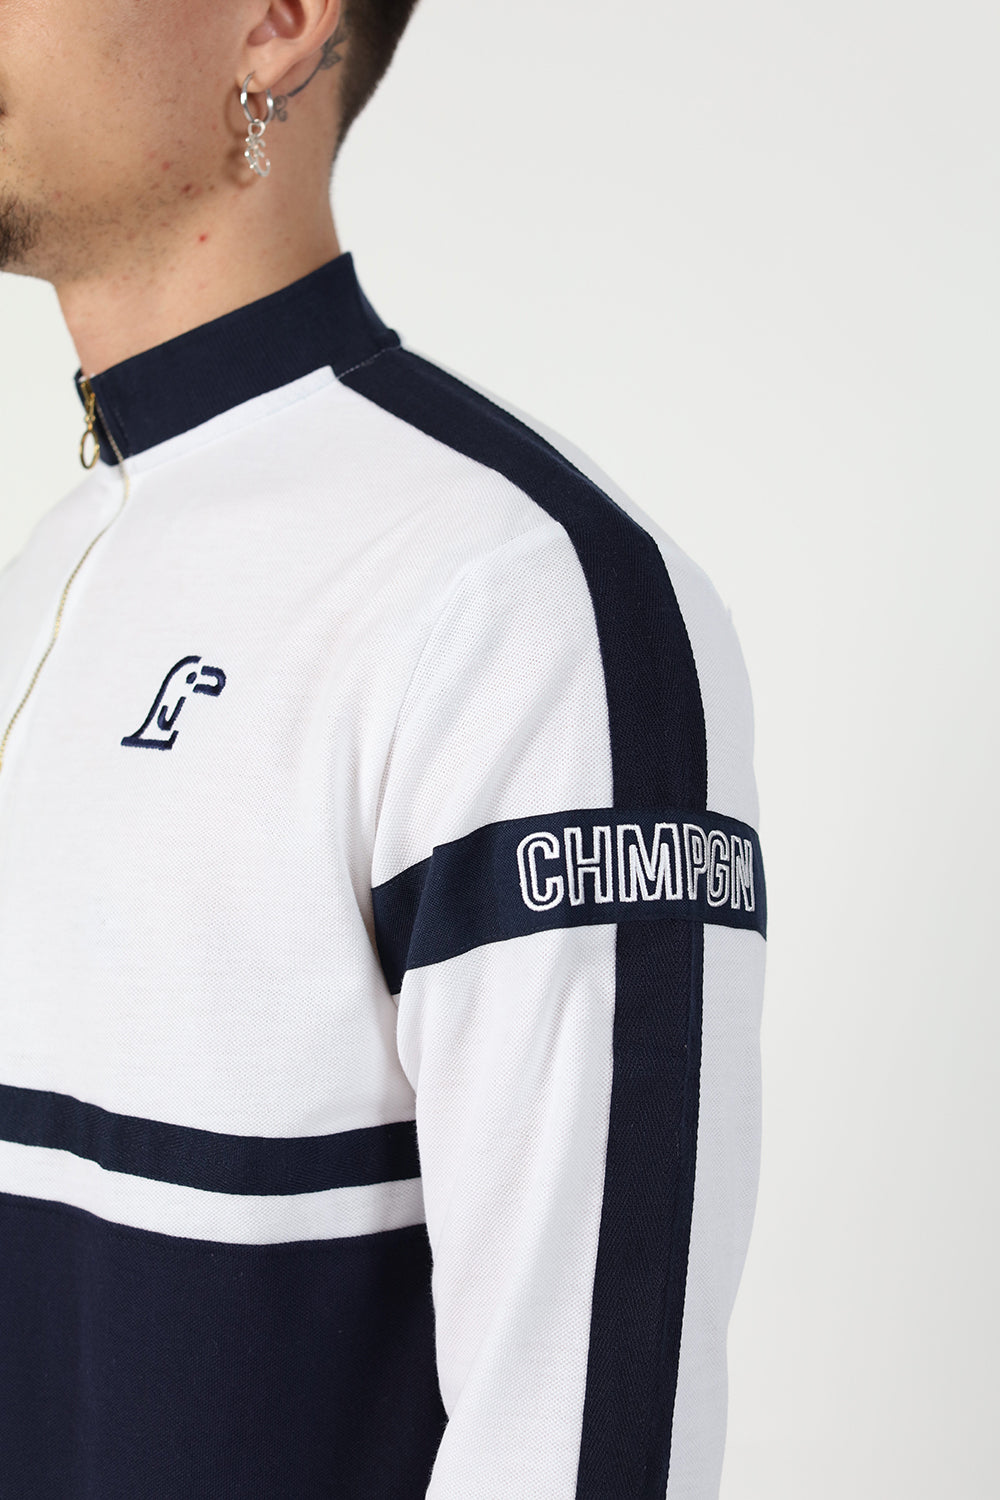 CHMPGN X LEJEUNE CLUB - WHITE/NAVY